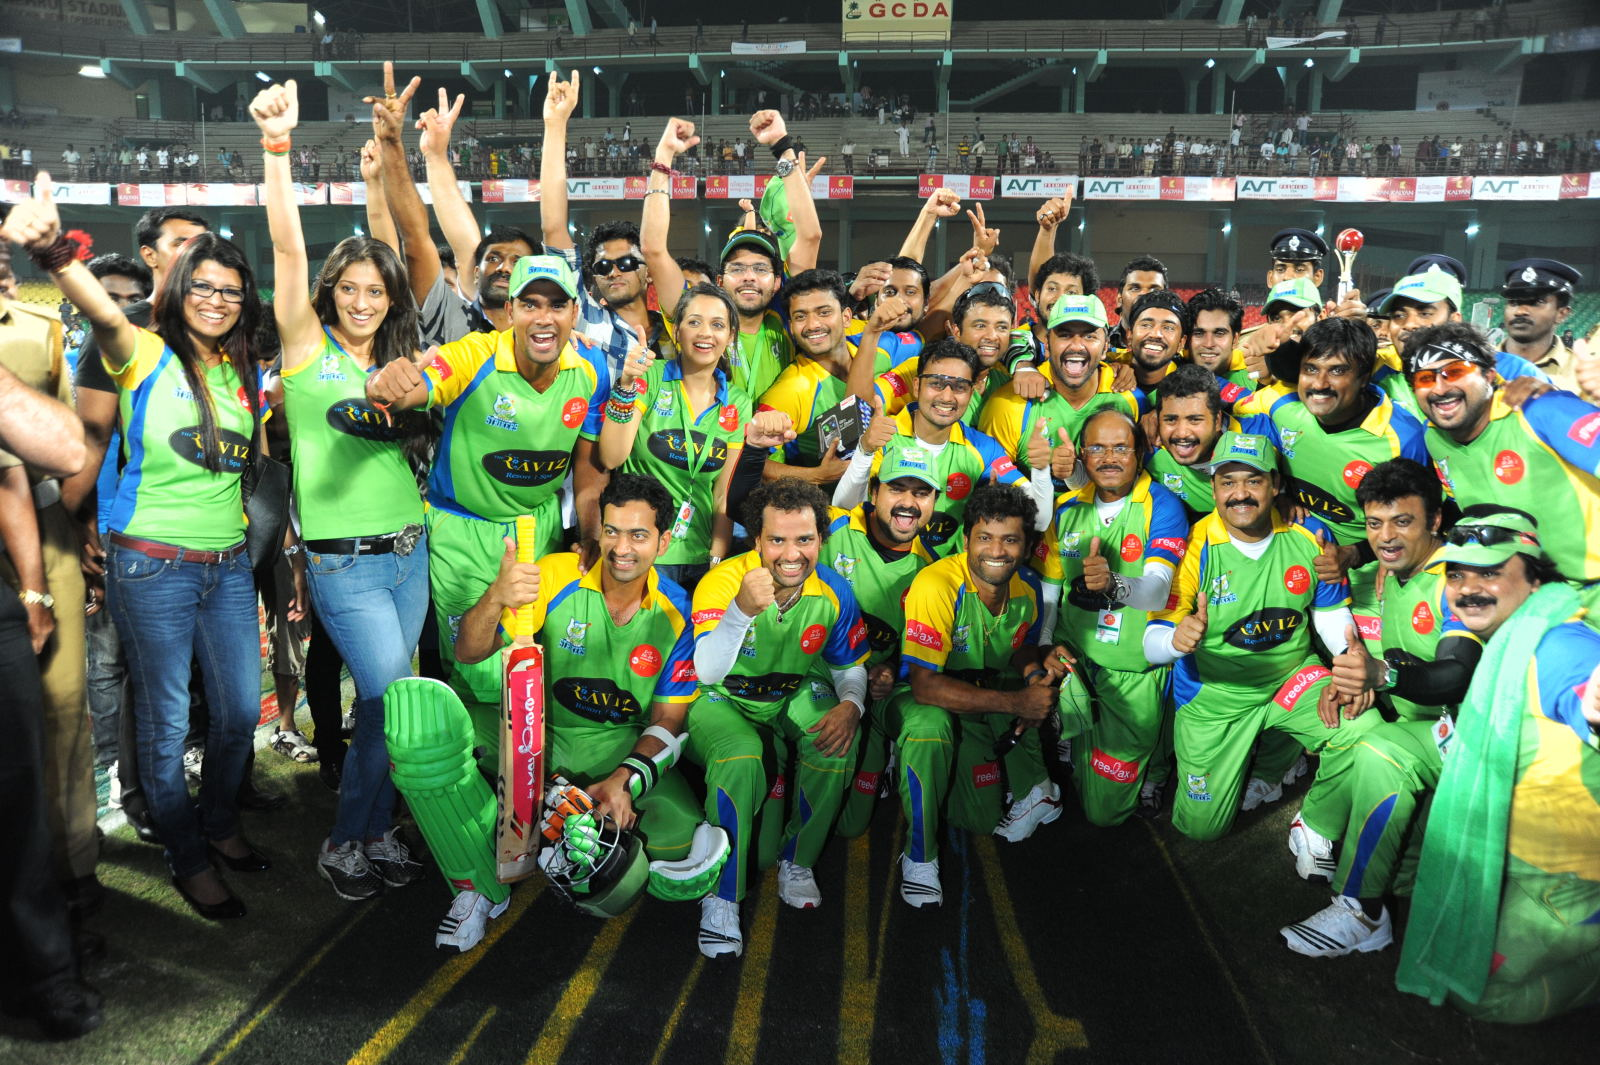 CCL 5: Kerala Strikers Brand Ambassadors 2015